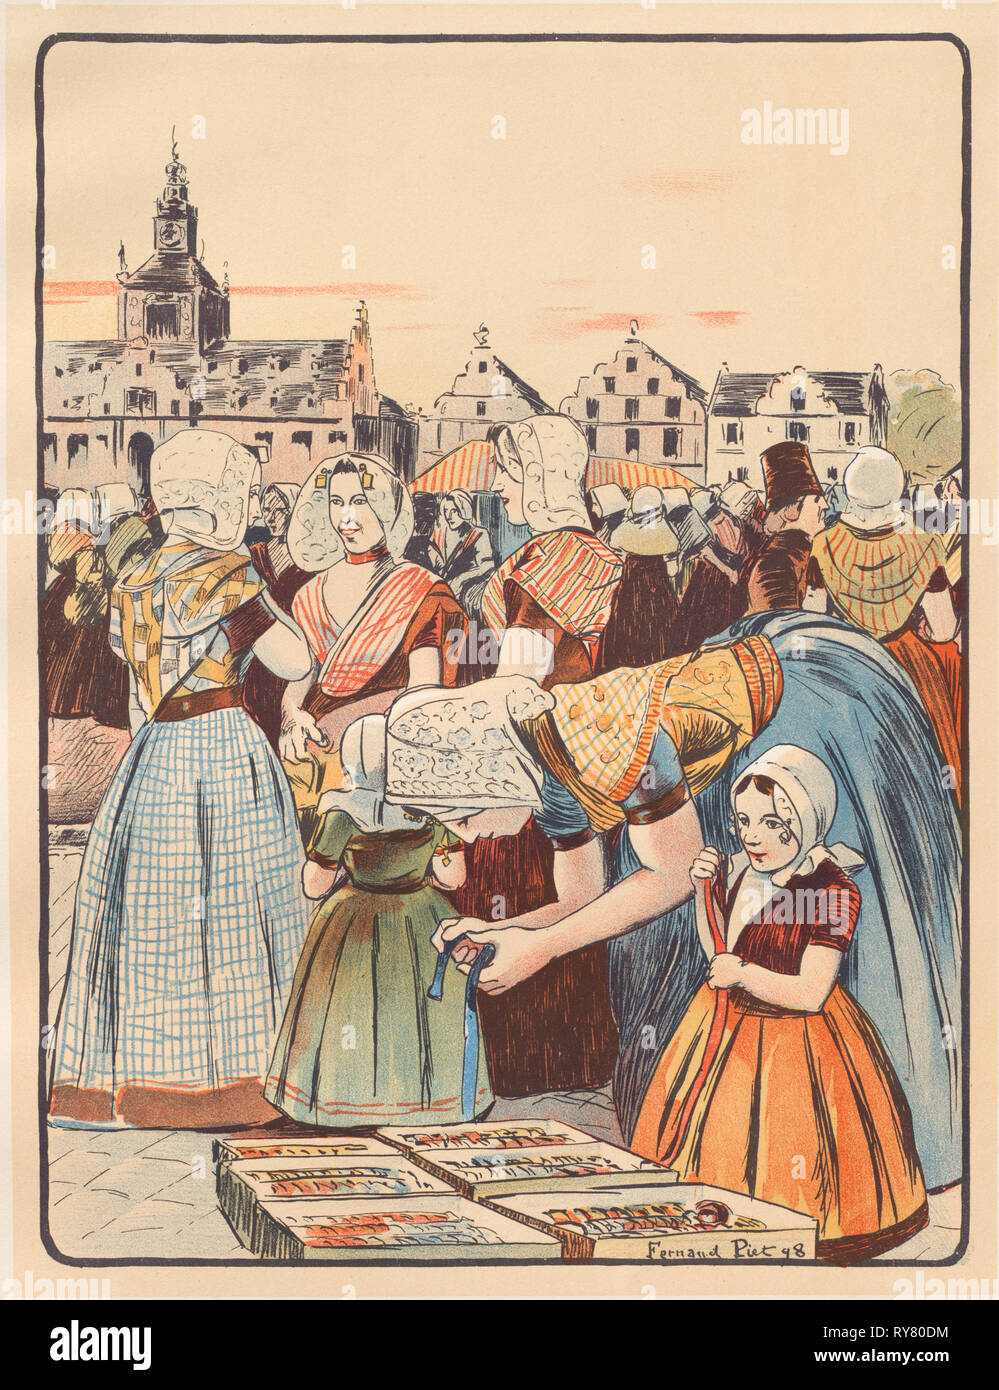 L'Estampe Moderne: Un Marché en Zélande, 1898. Fernand Piet (French, 1869-1942), Imprimerie Champenois. Color lithograph from bound volume containing 50 lithographs, each with a tissue paper guard; sheet: 40.2 x 30.4 cm (15 13/16 x 11 15/16 in.); image: 33 x 25.2 cm (13 x 9 15/16 in - Stock Image